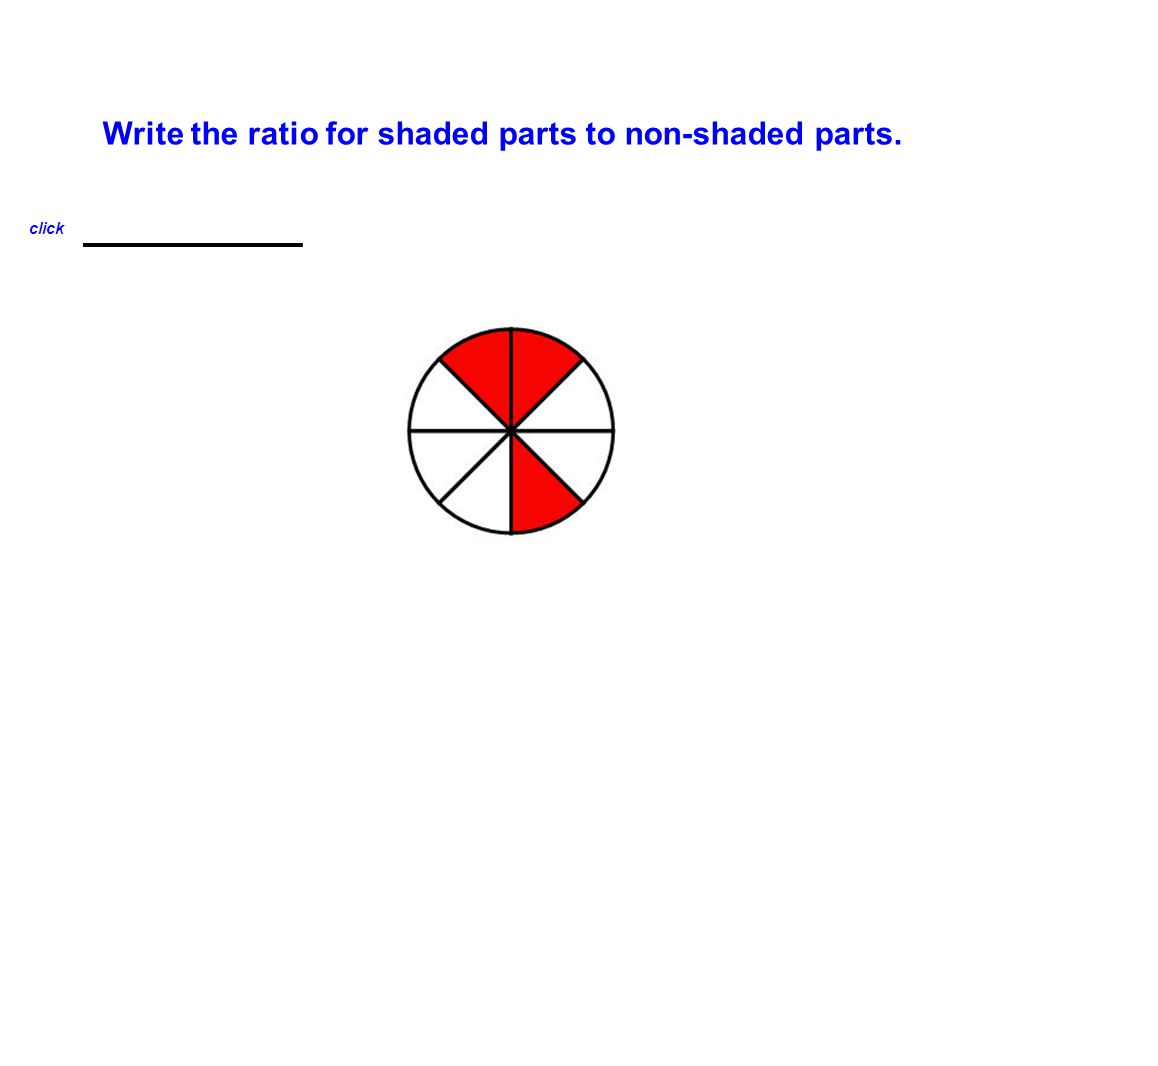 Write the ratio for shaded parts to non-shaded parts. 3 : 5 click